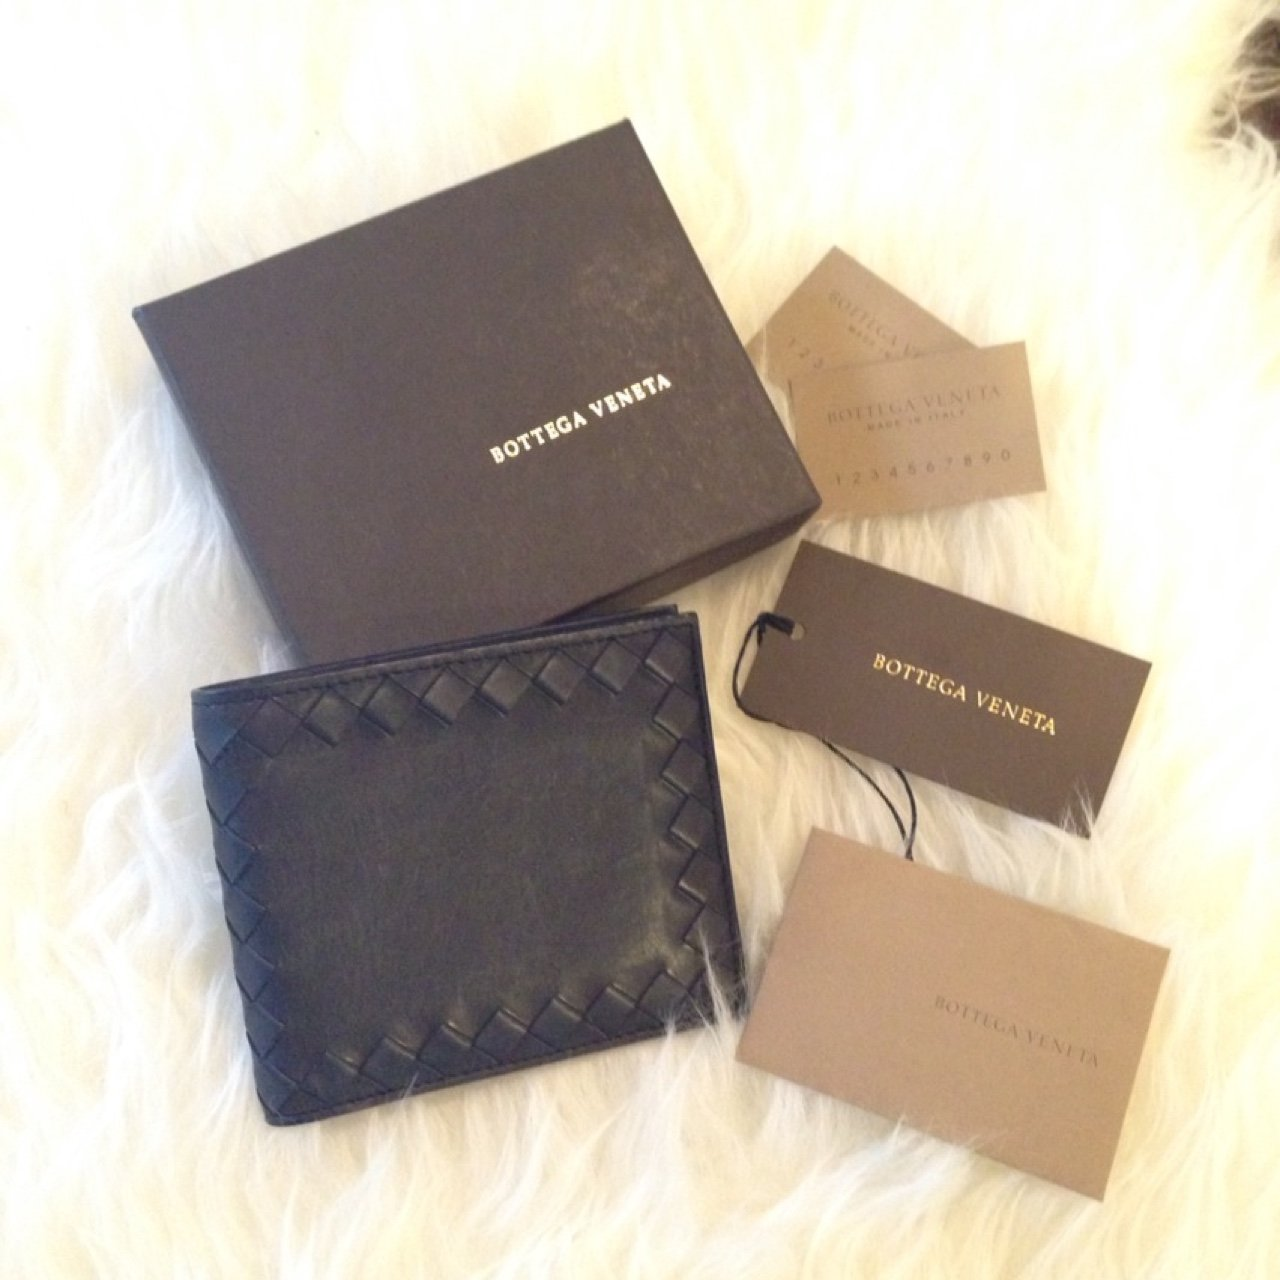 545f63a400c7 Rare Intrecciato Bifold Leather Wallet. It still has the but - Depop